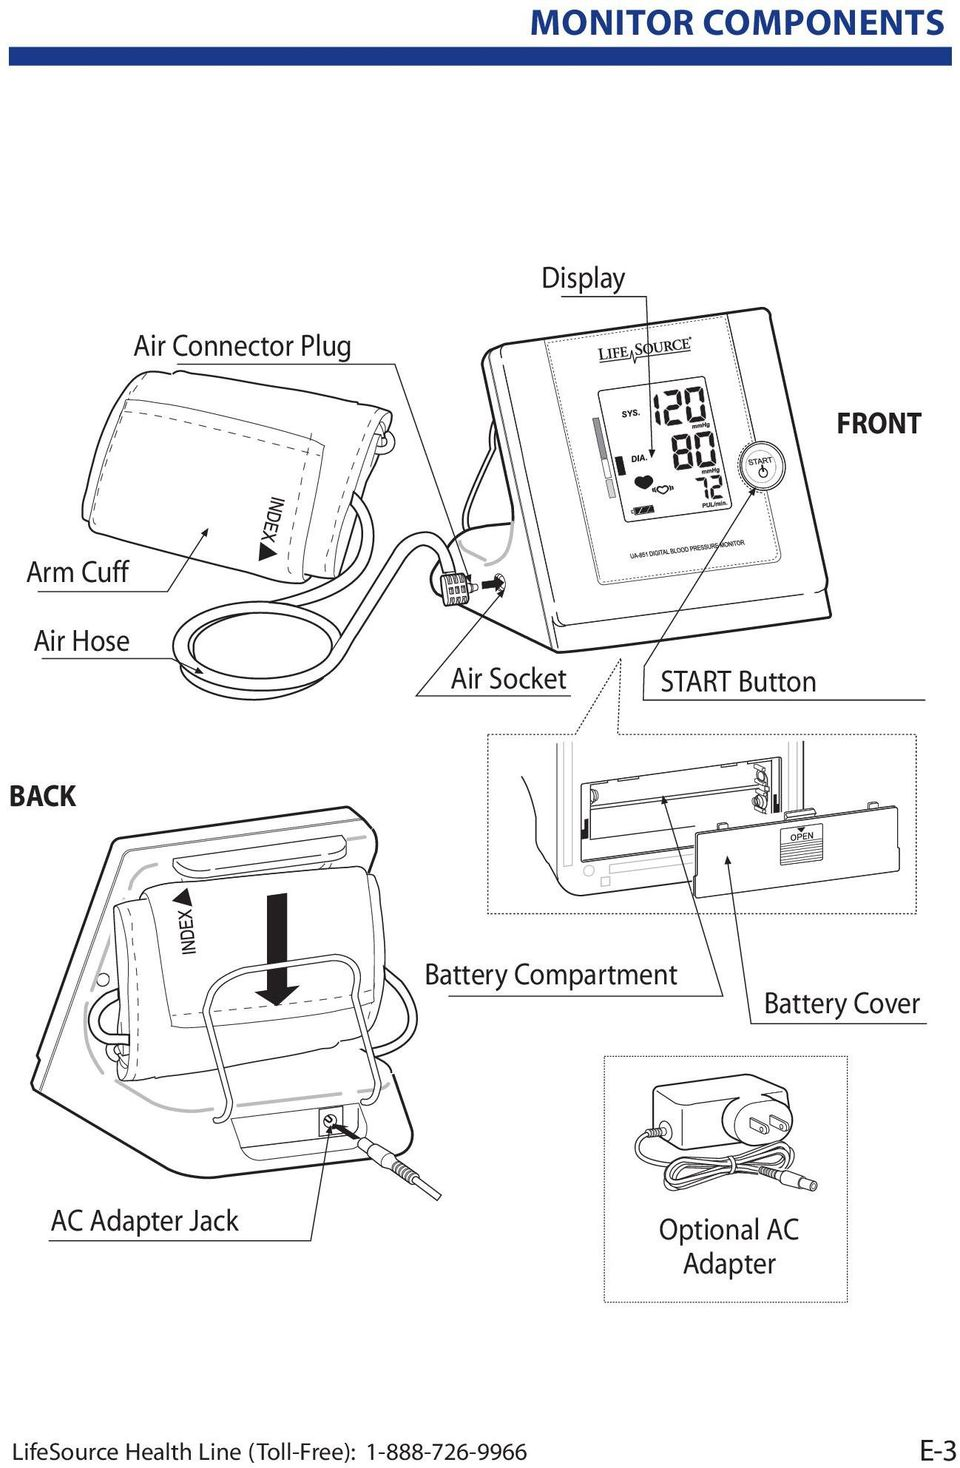 Compartment Battery Cover AC Adapter Jack Optional AC